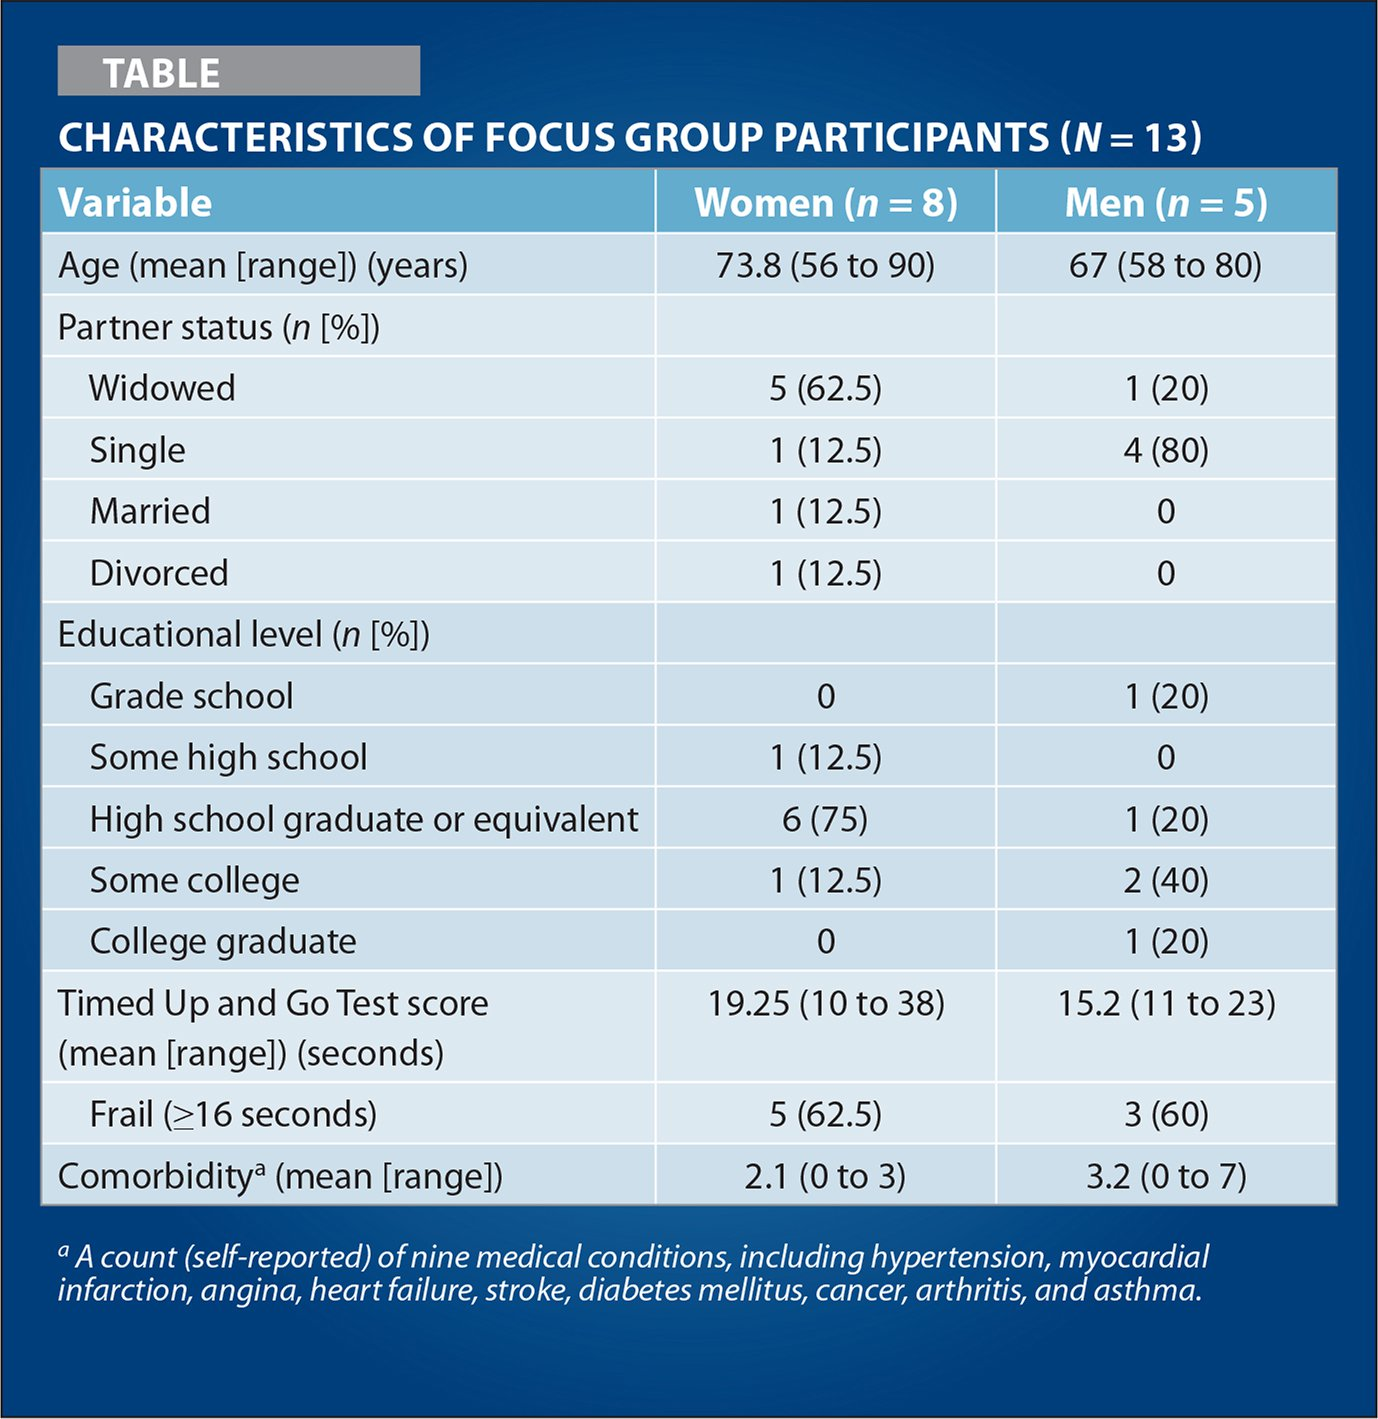 Characteristics of Focus Group Participants (N = 13)